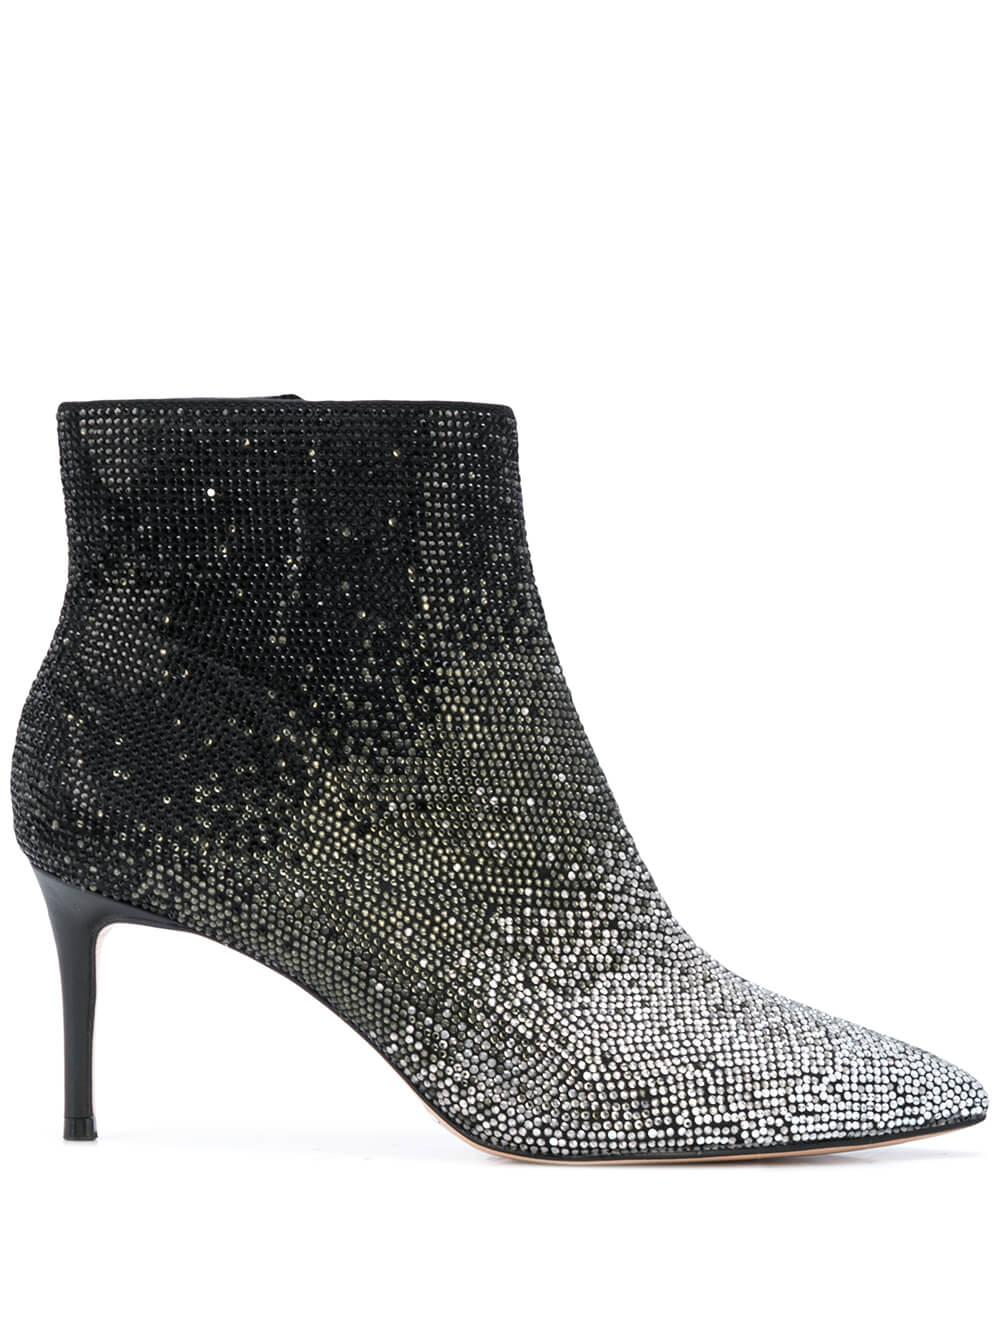 Degrade Bootie With Kitten Heel